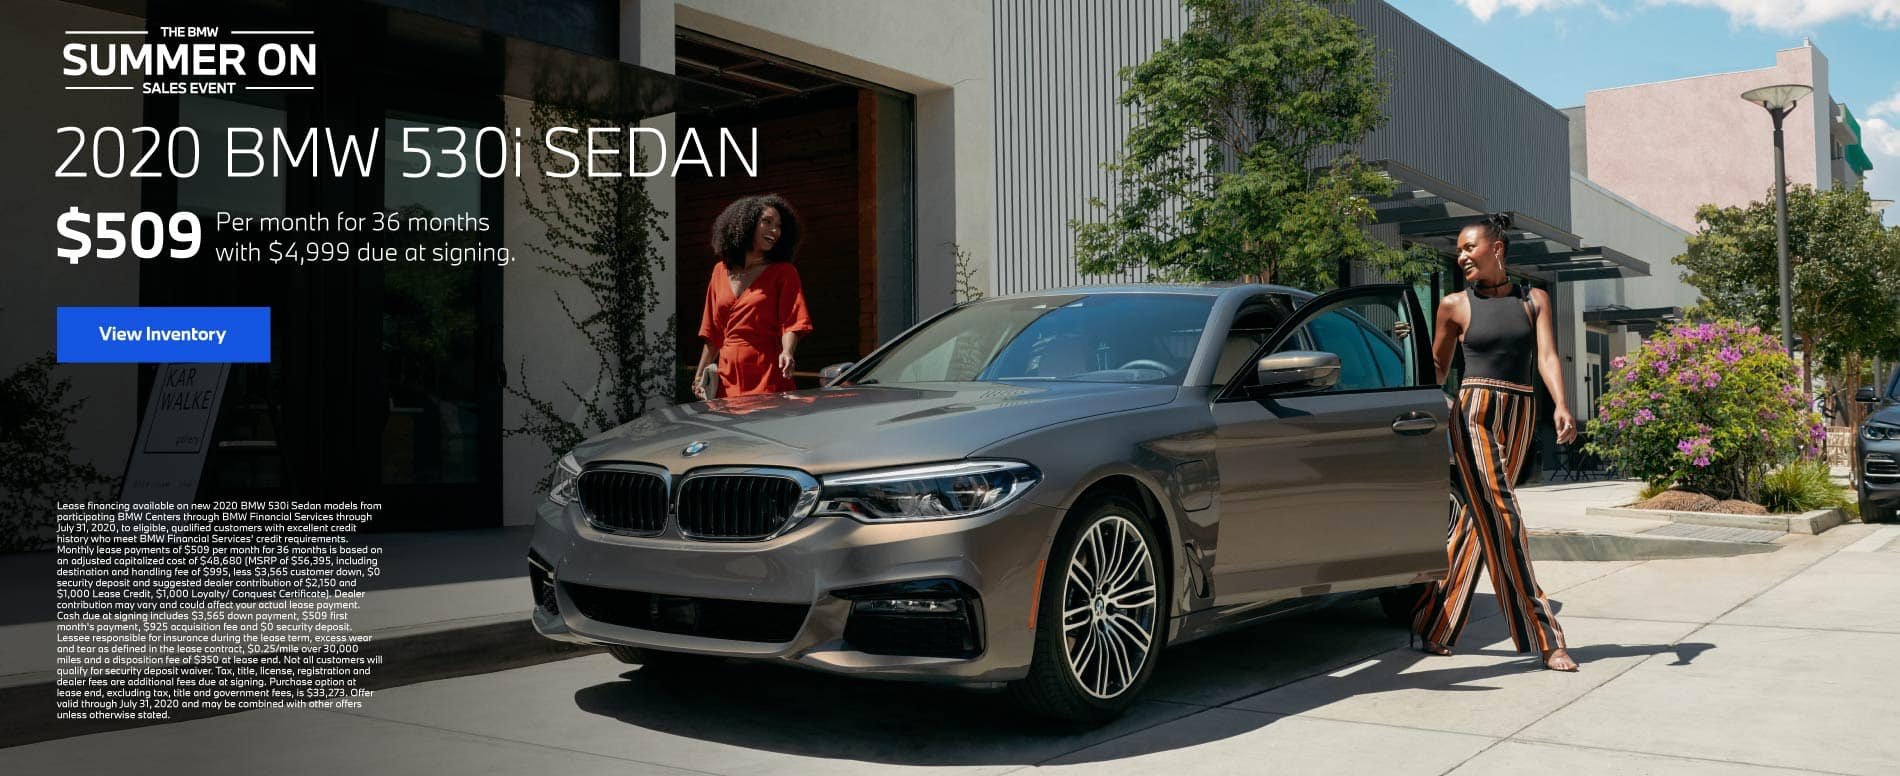 2020 BMW 530i Sedan $509 a month for 36 months | View Inventory